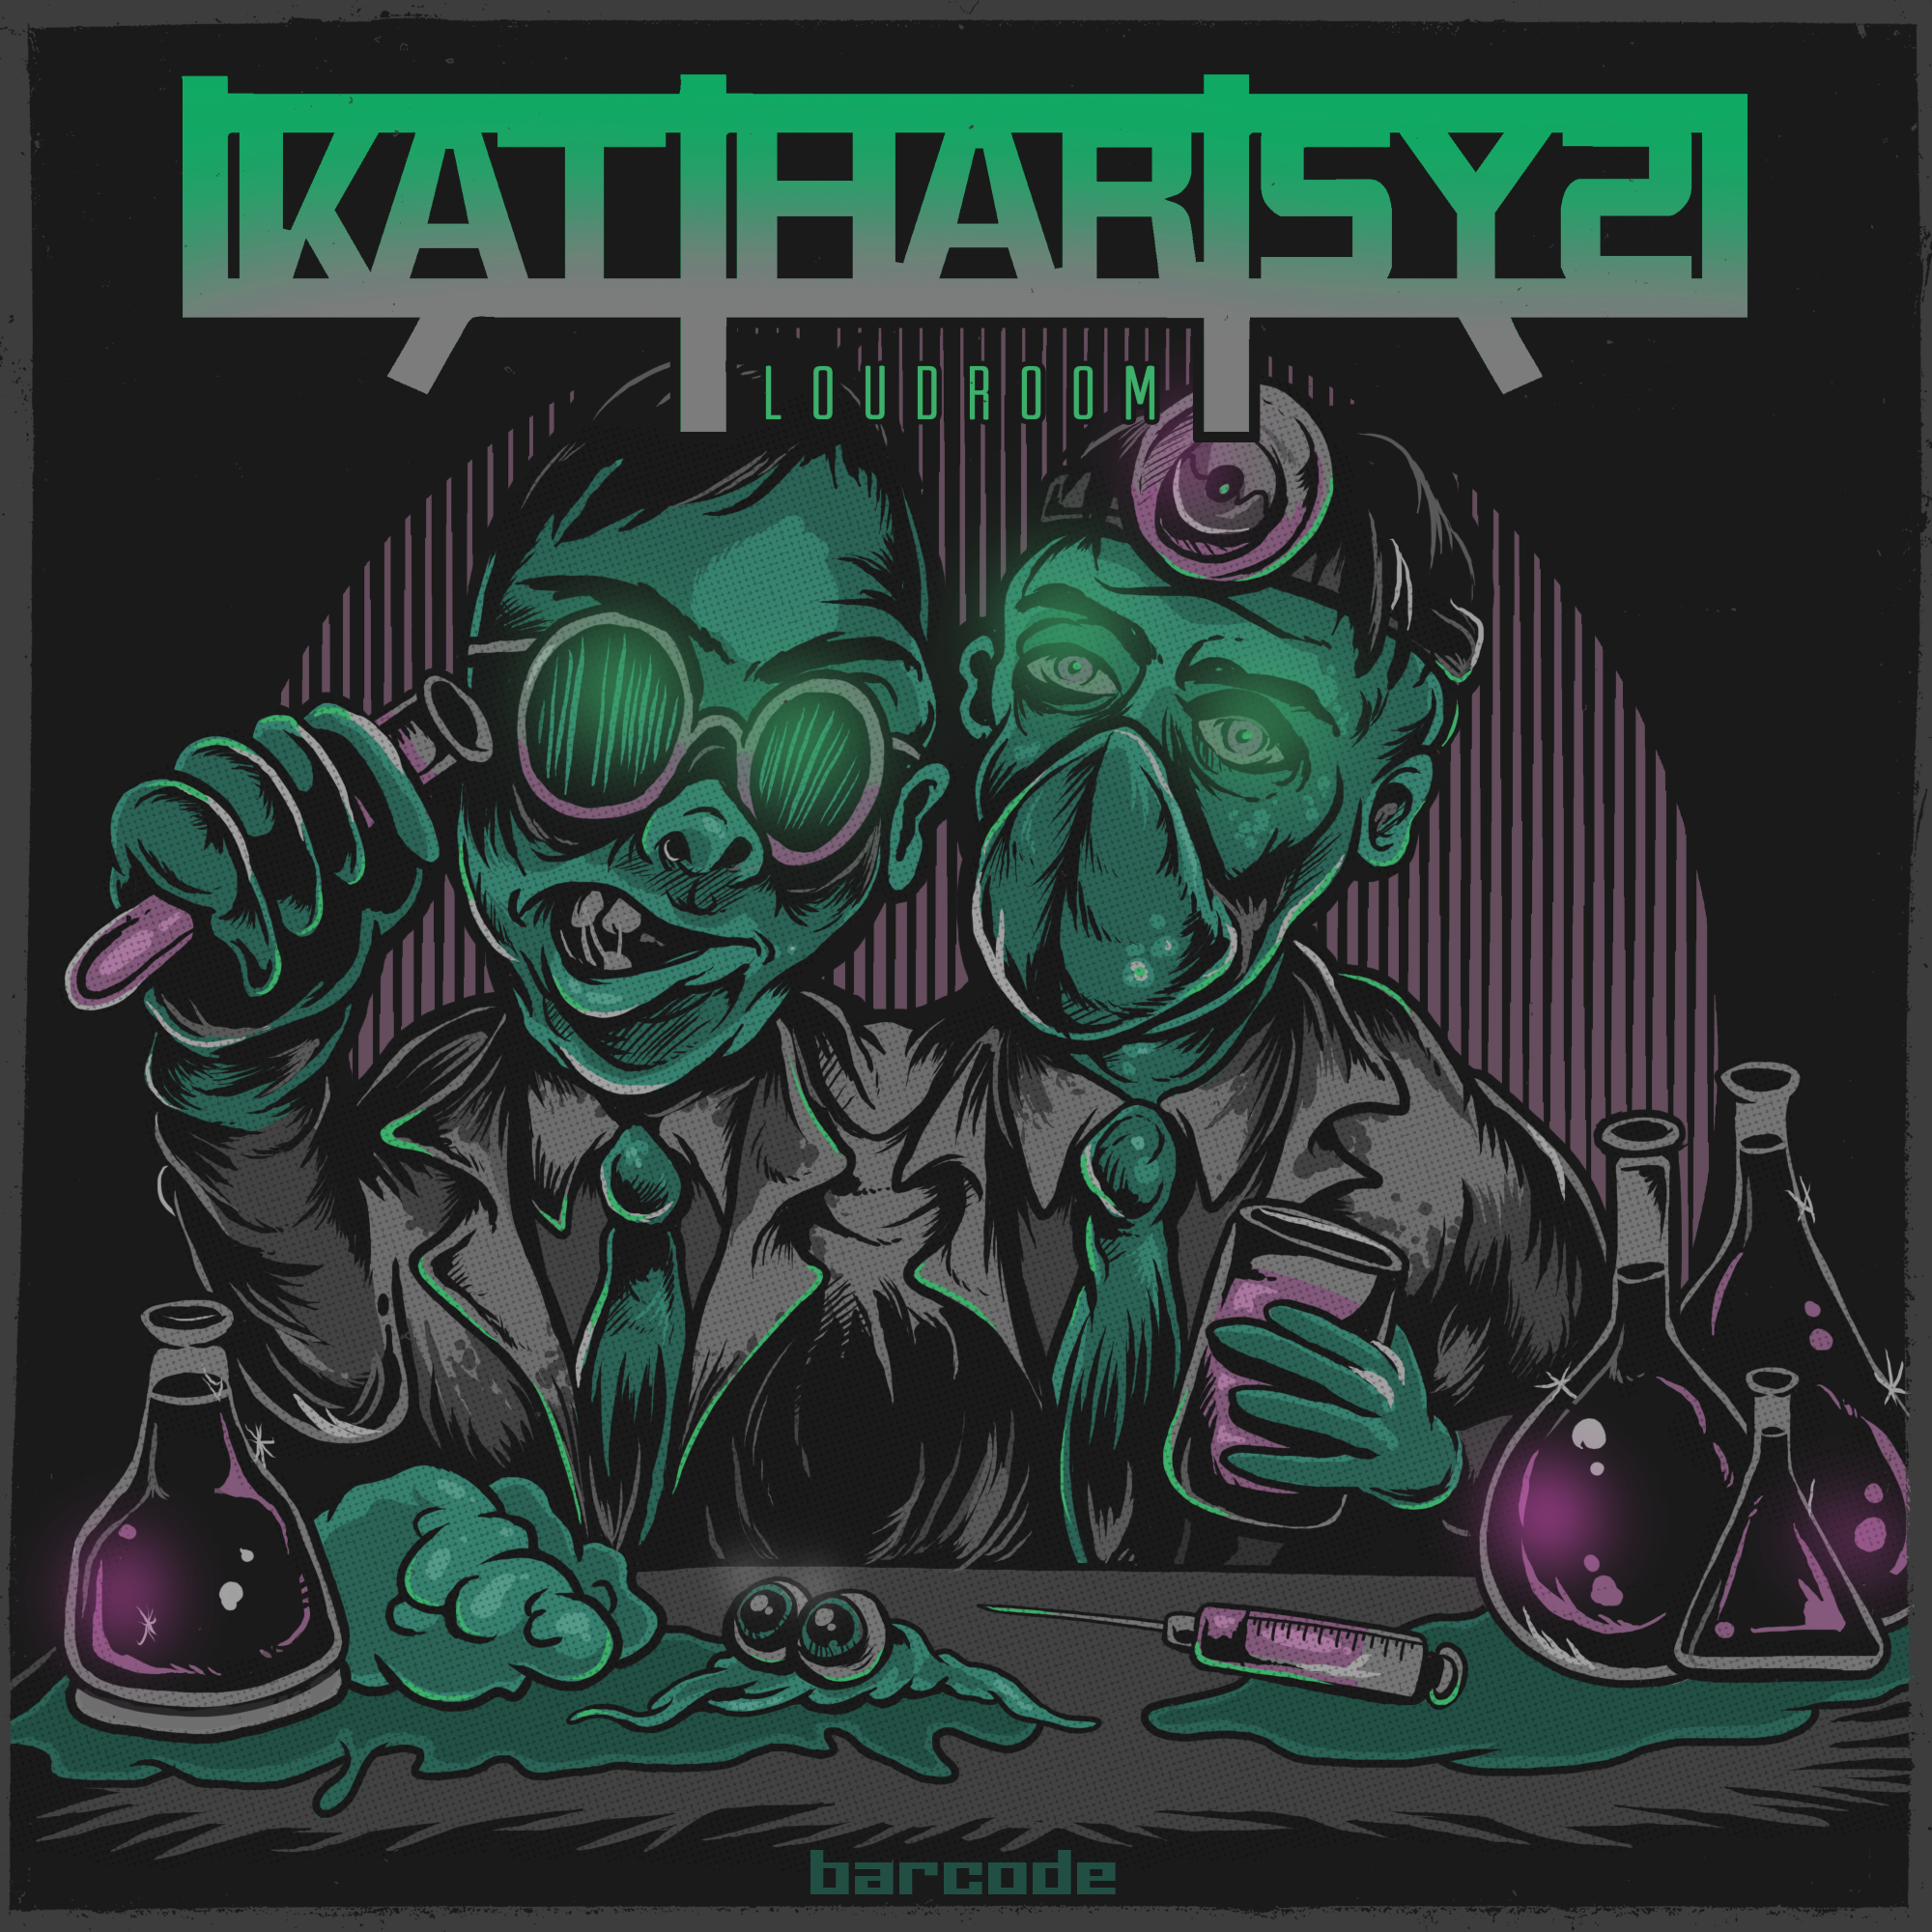 Katharsys - Loudroom